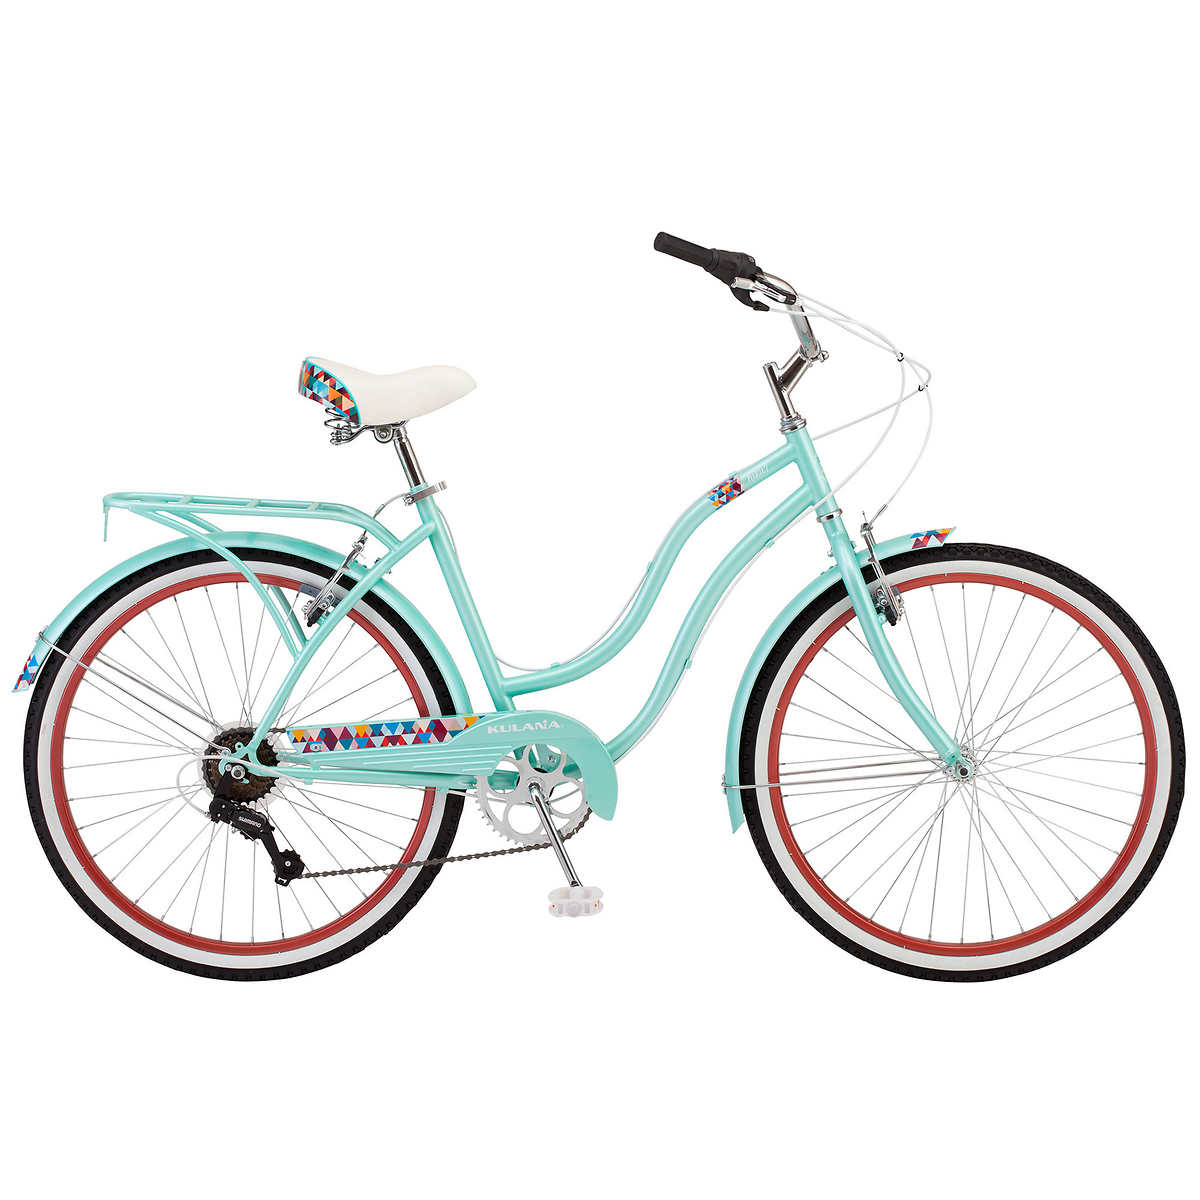 Cruiser Bicycle Canada Bicycle Model Ideas